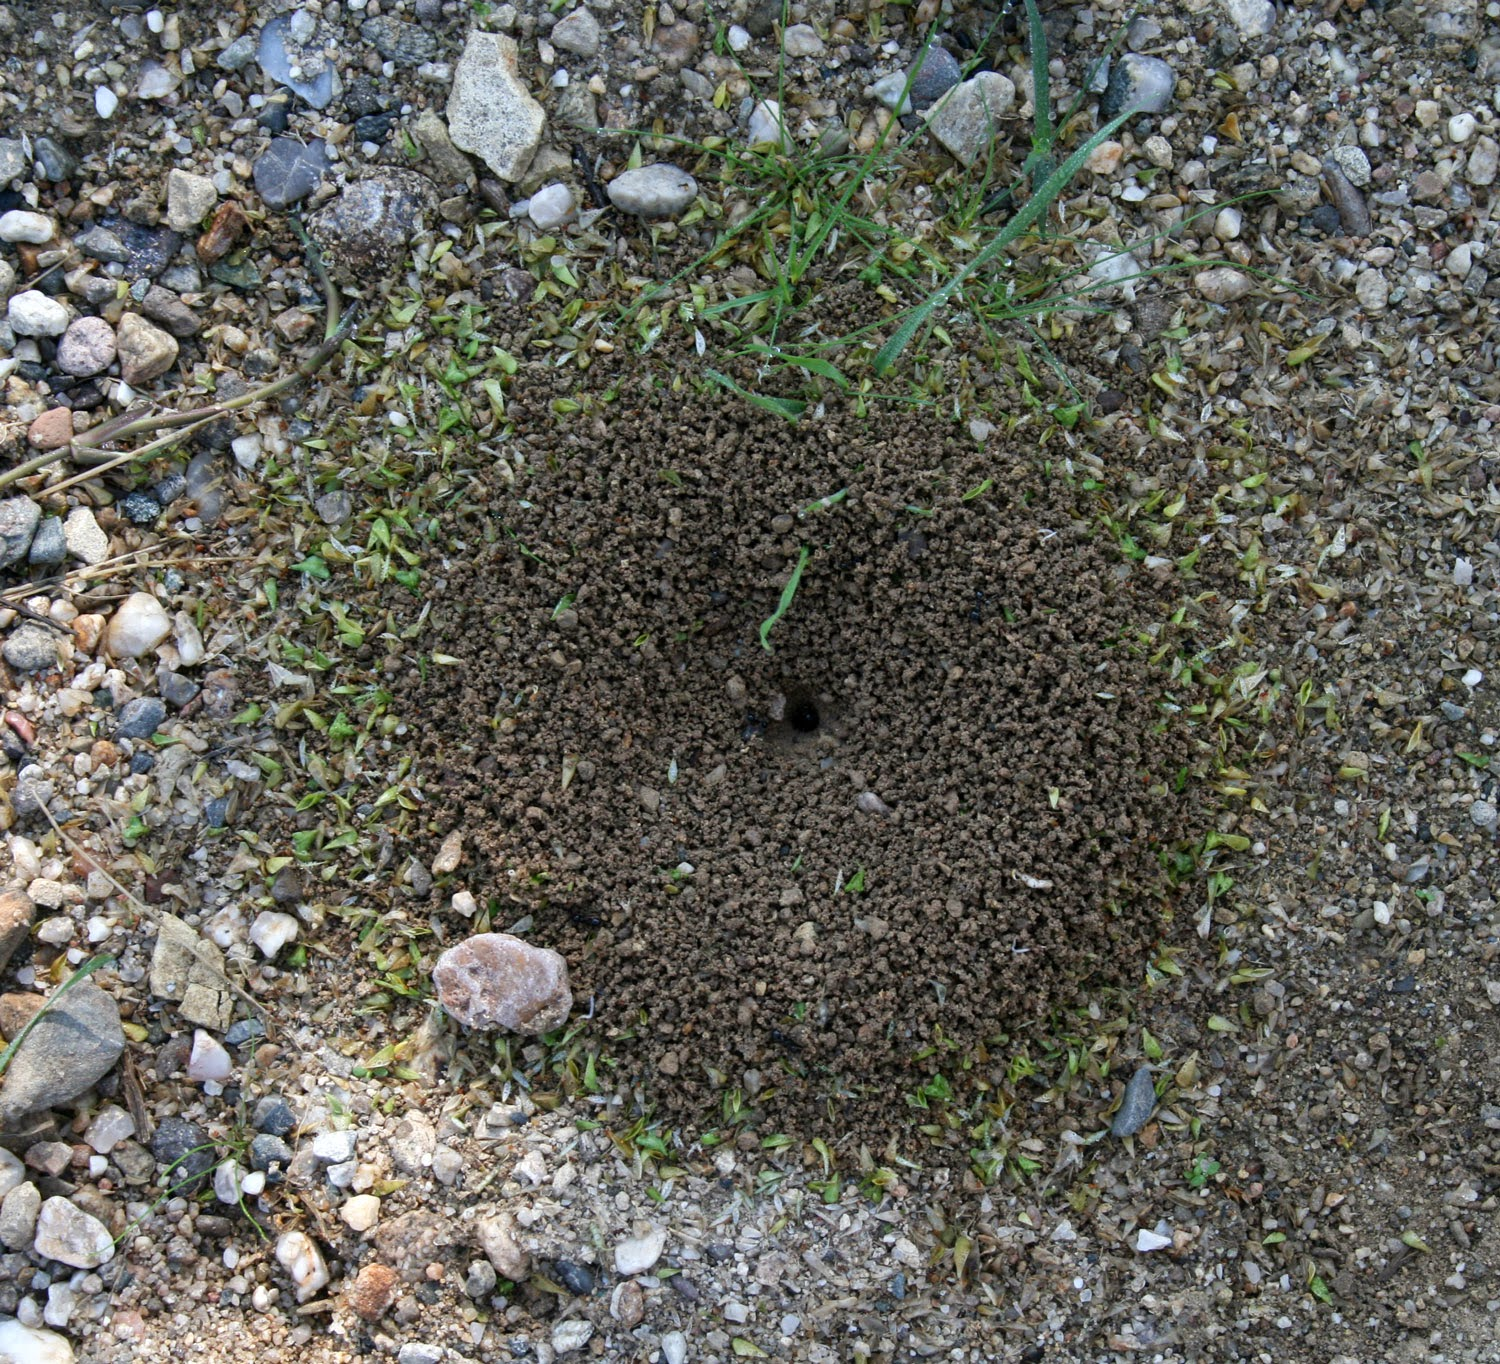 Grass bits around an ants nest